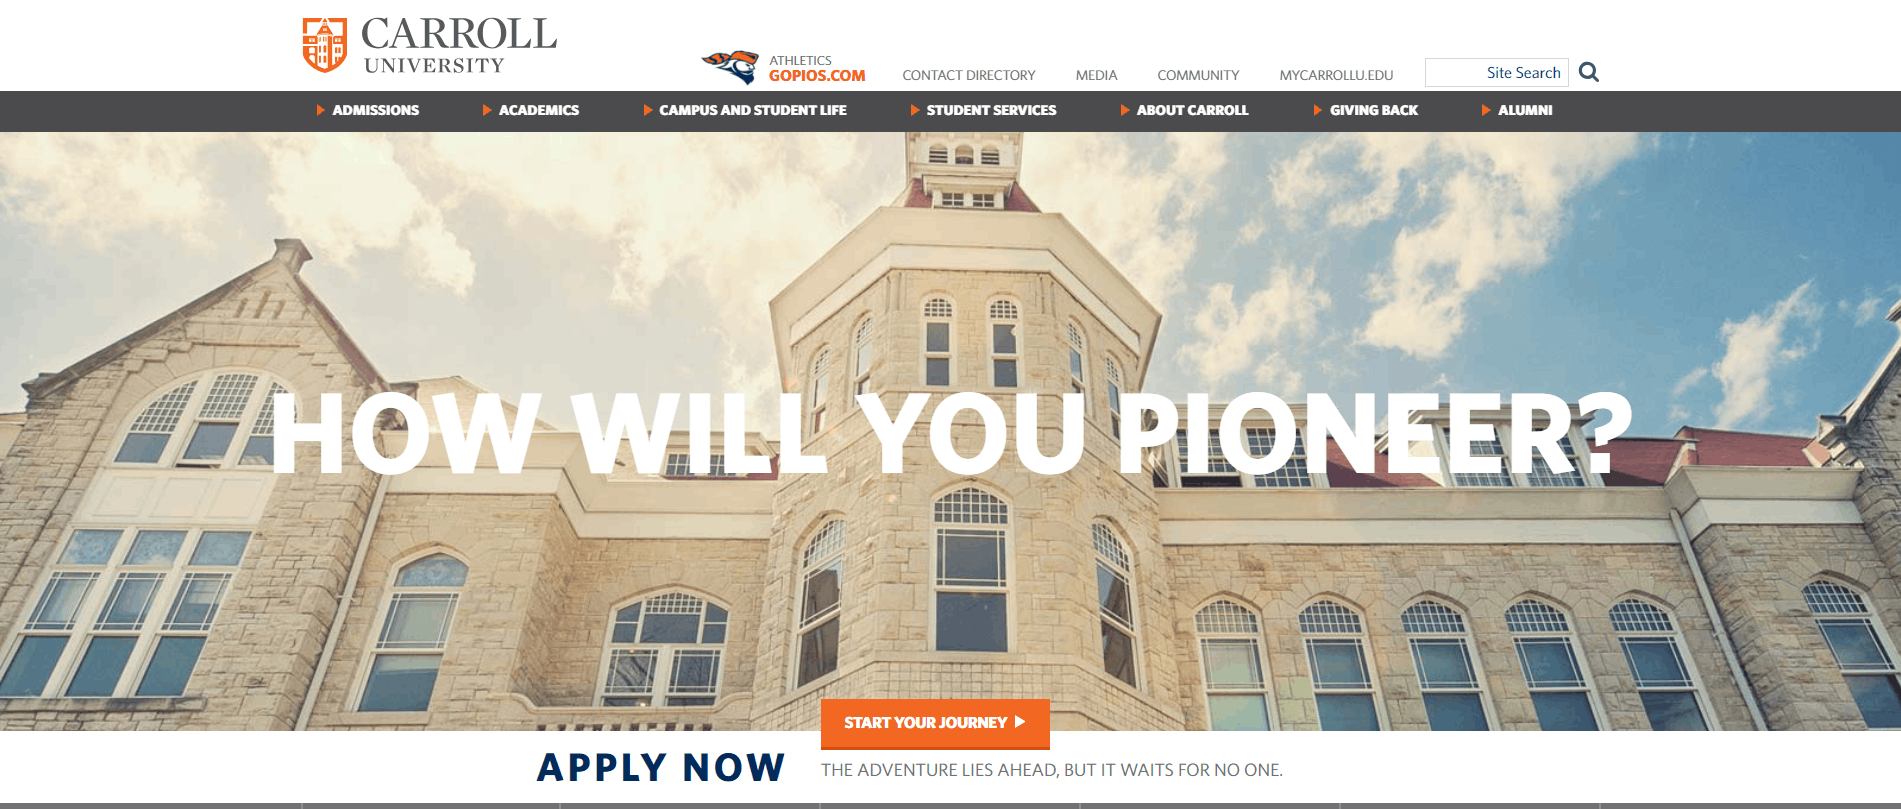 Carroll University website